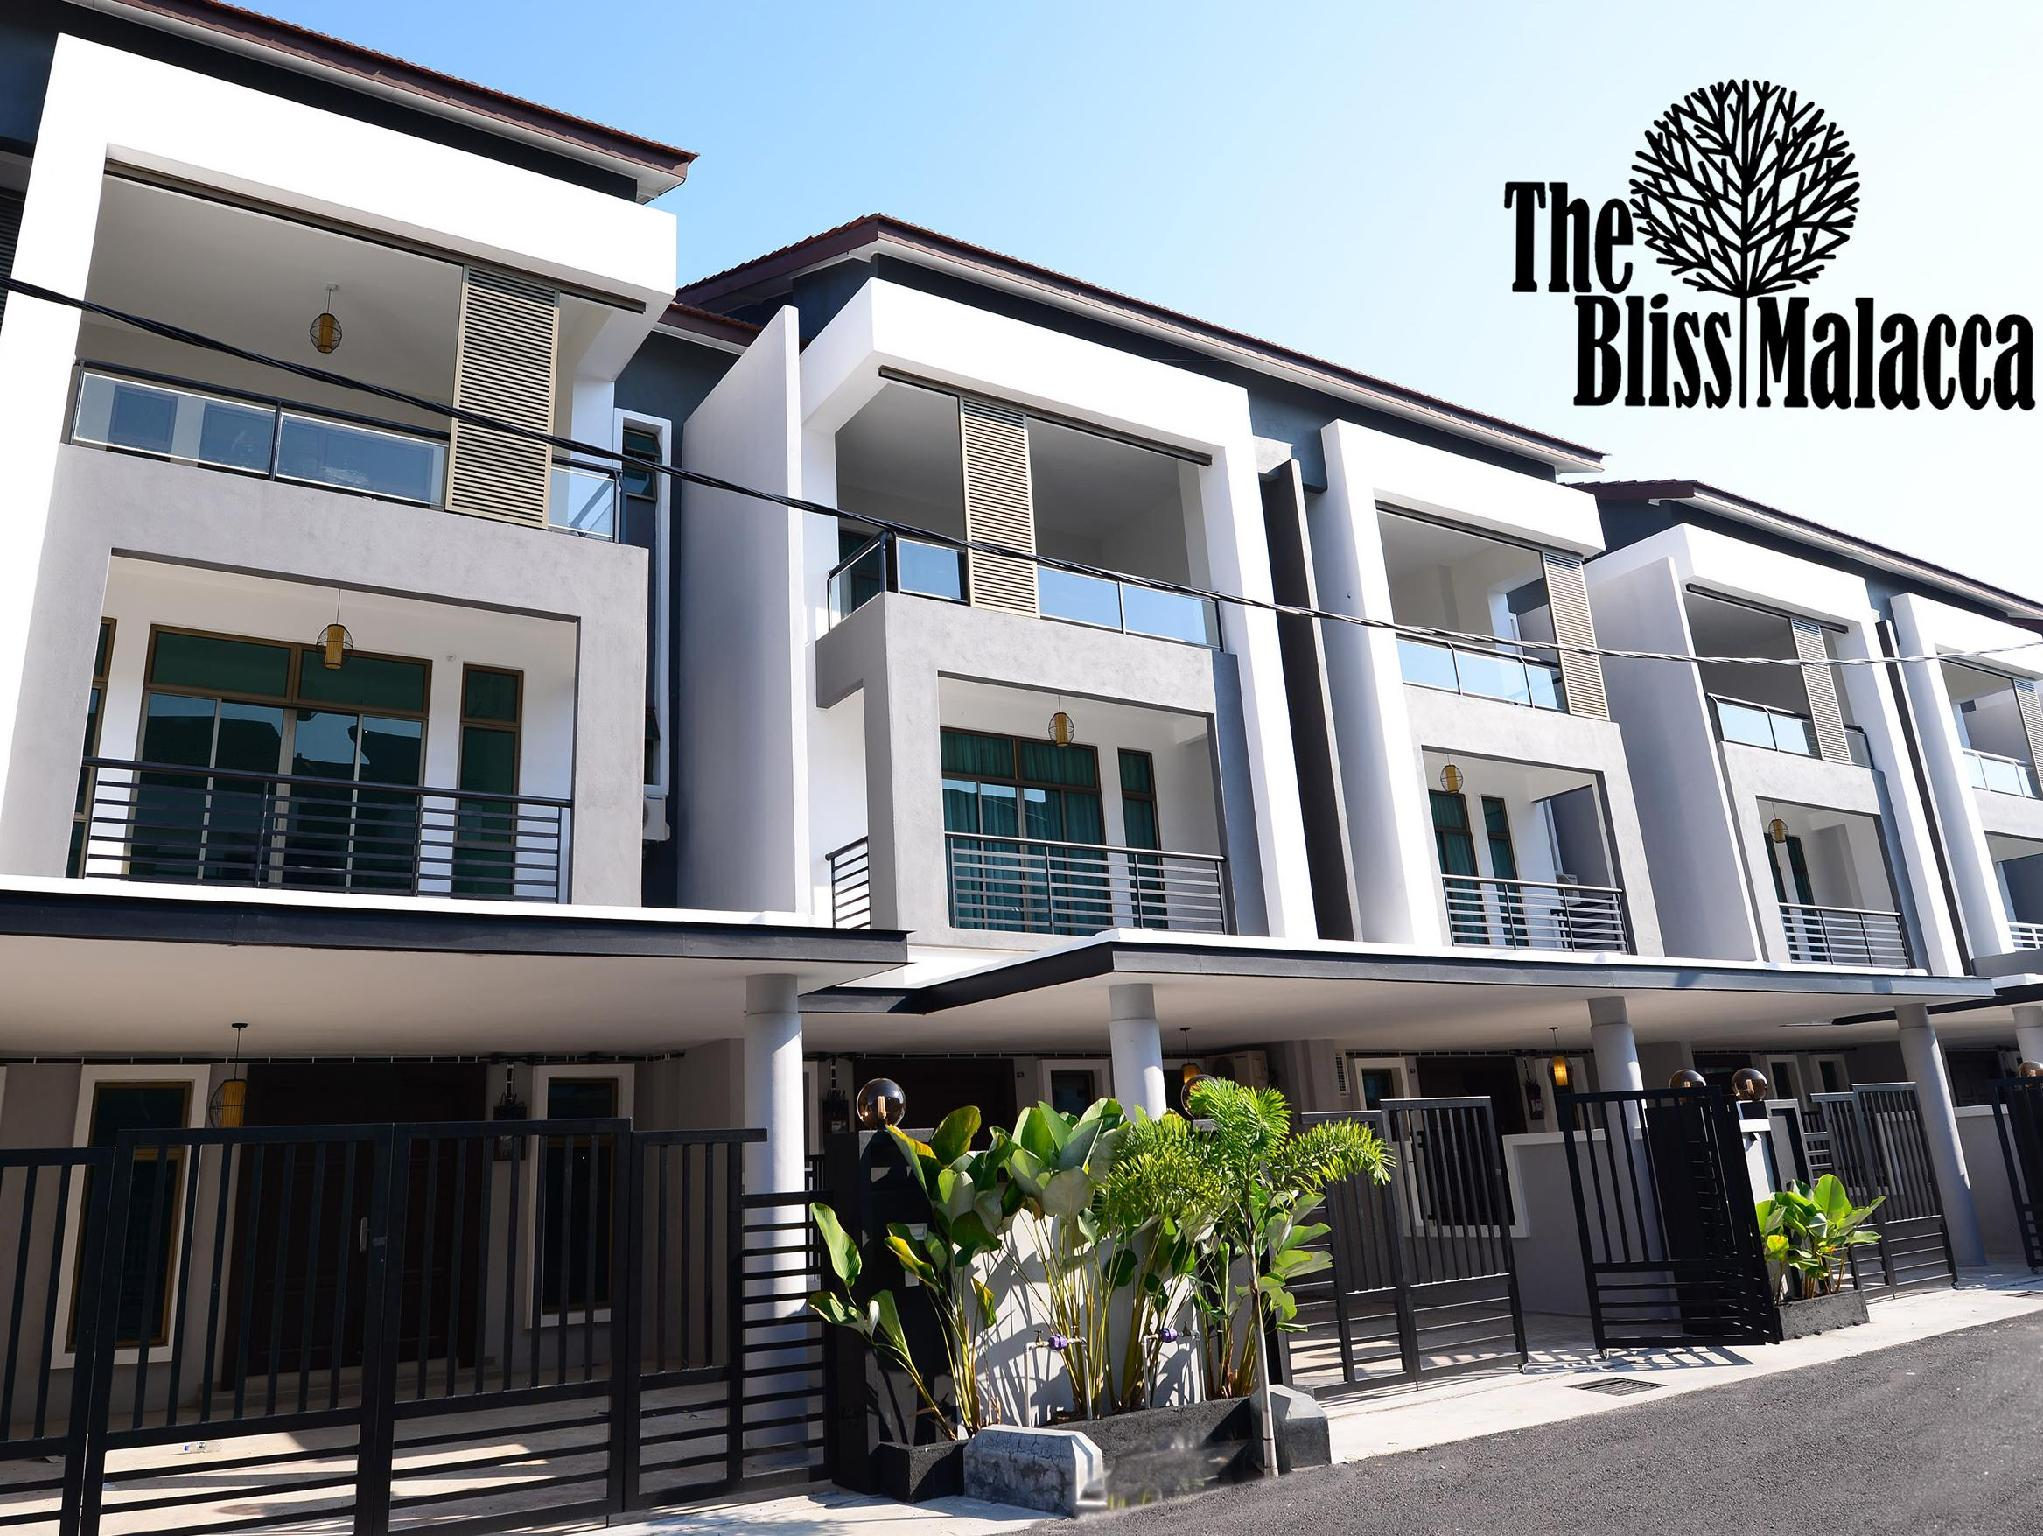 The Bliss Malacca2